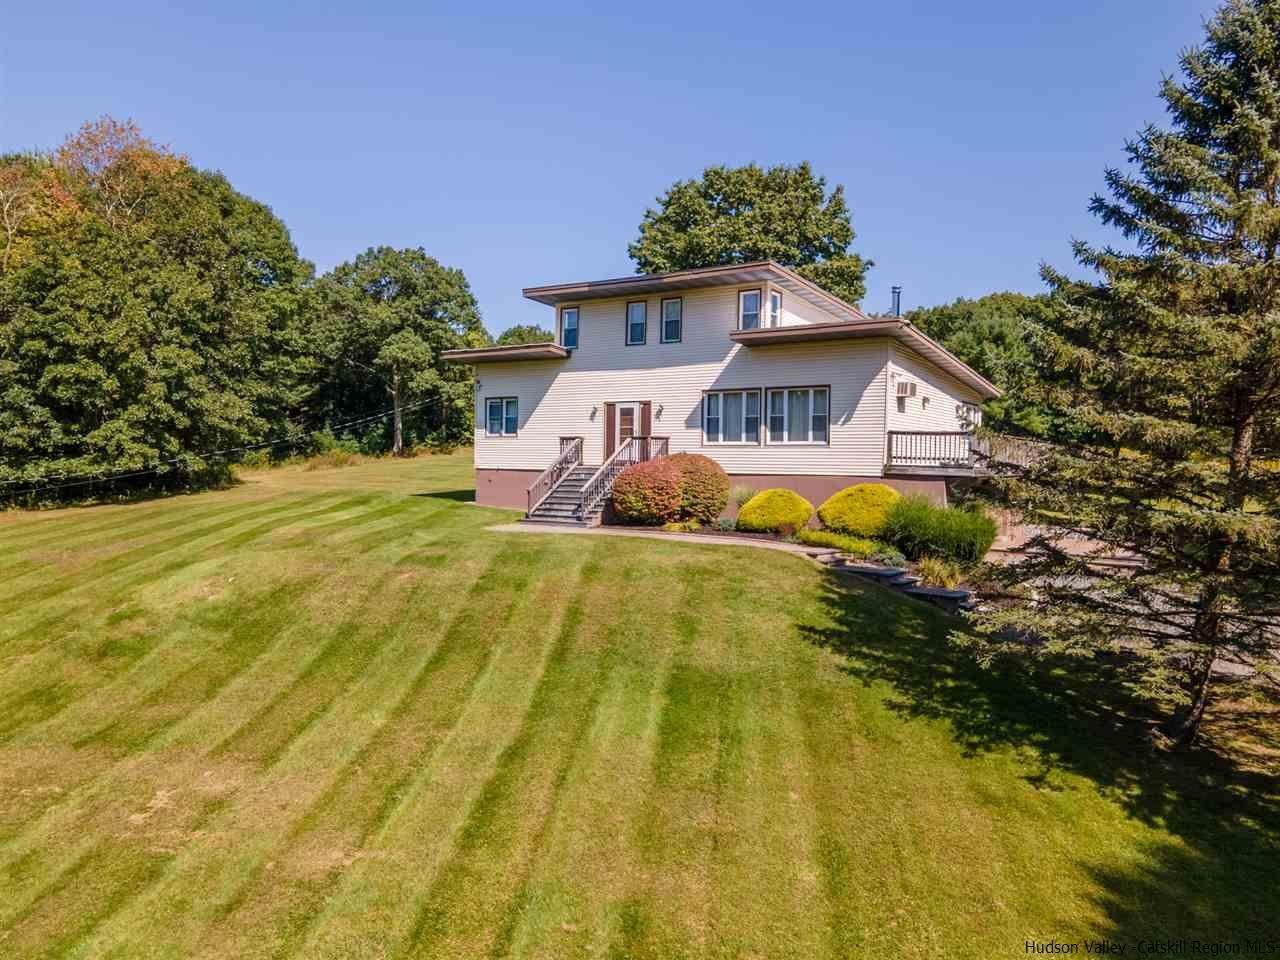 Single Family Homes for Sale at 36 Katzman Road Ellenville, New York 12489 United States